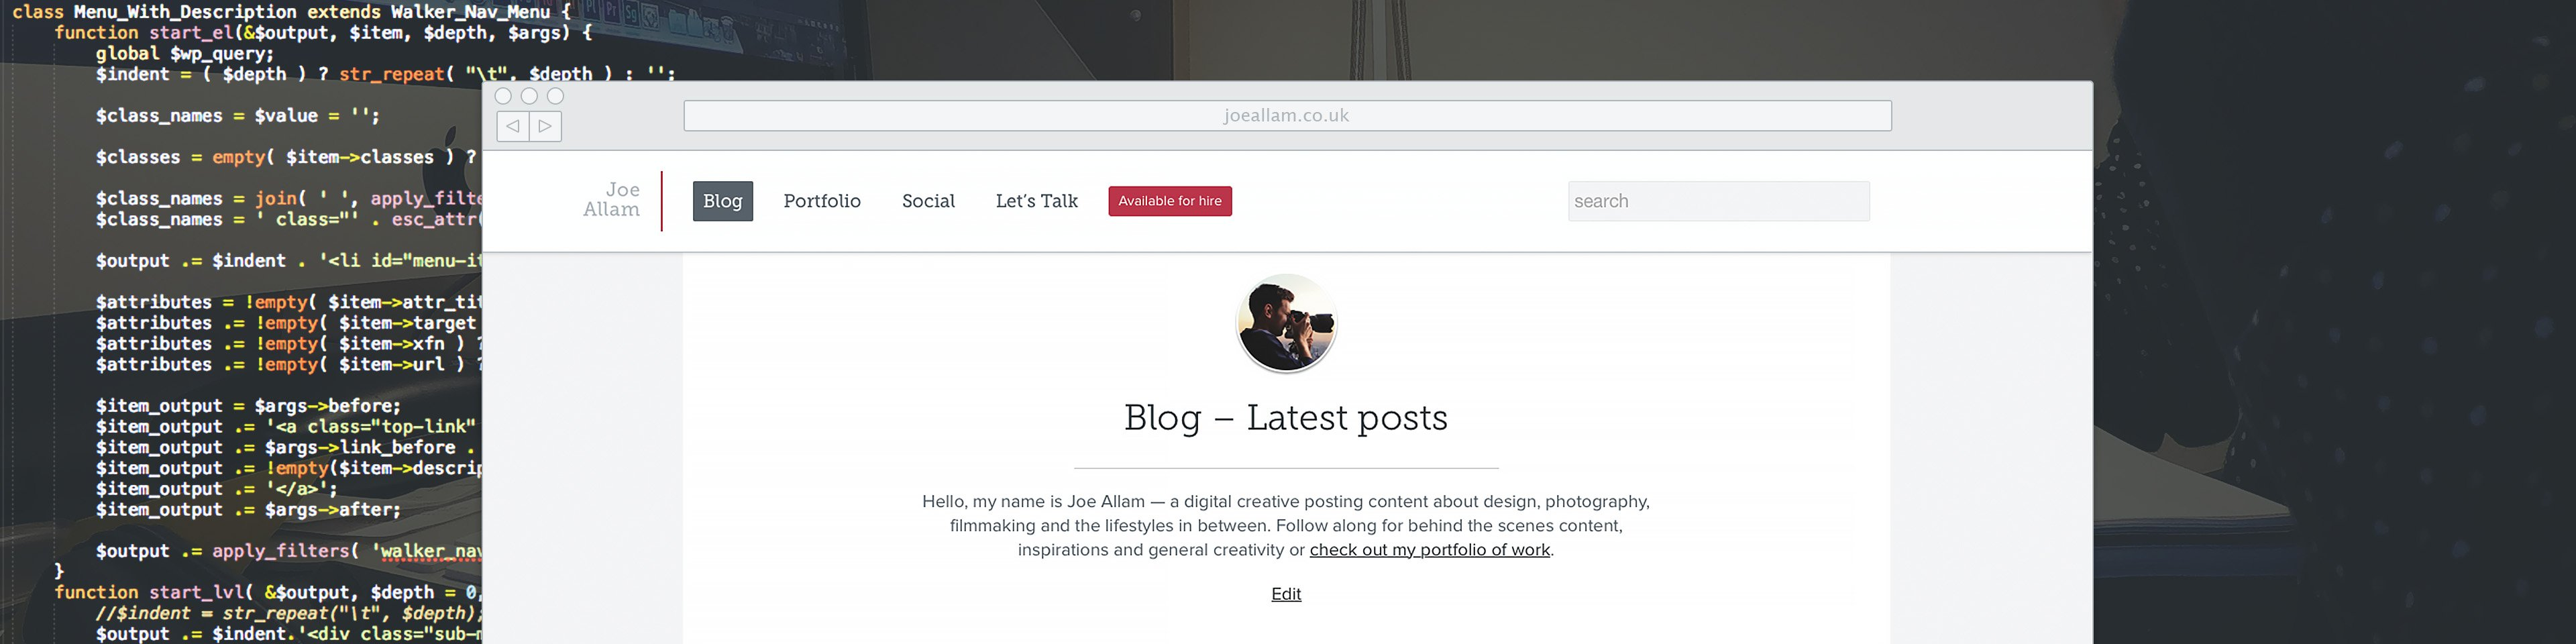 joeallam.co.uk redesign